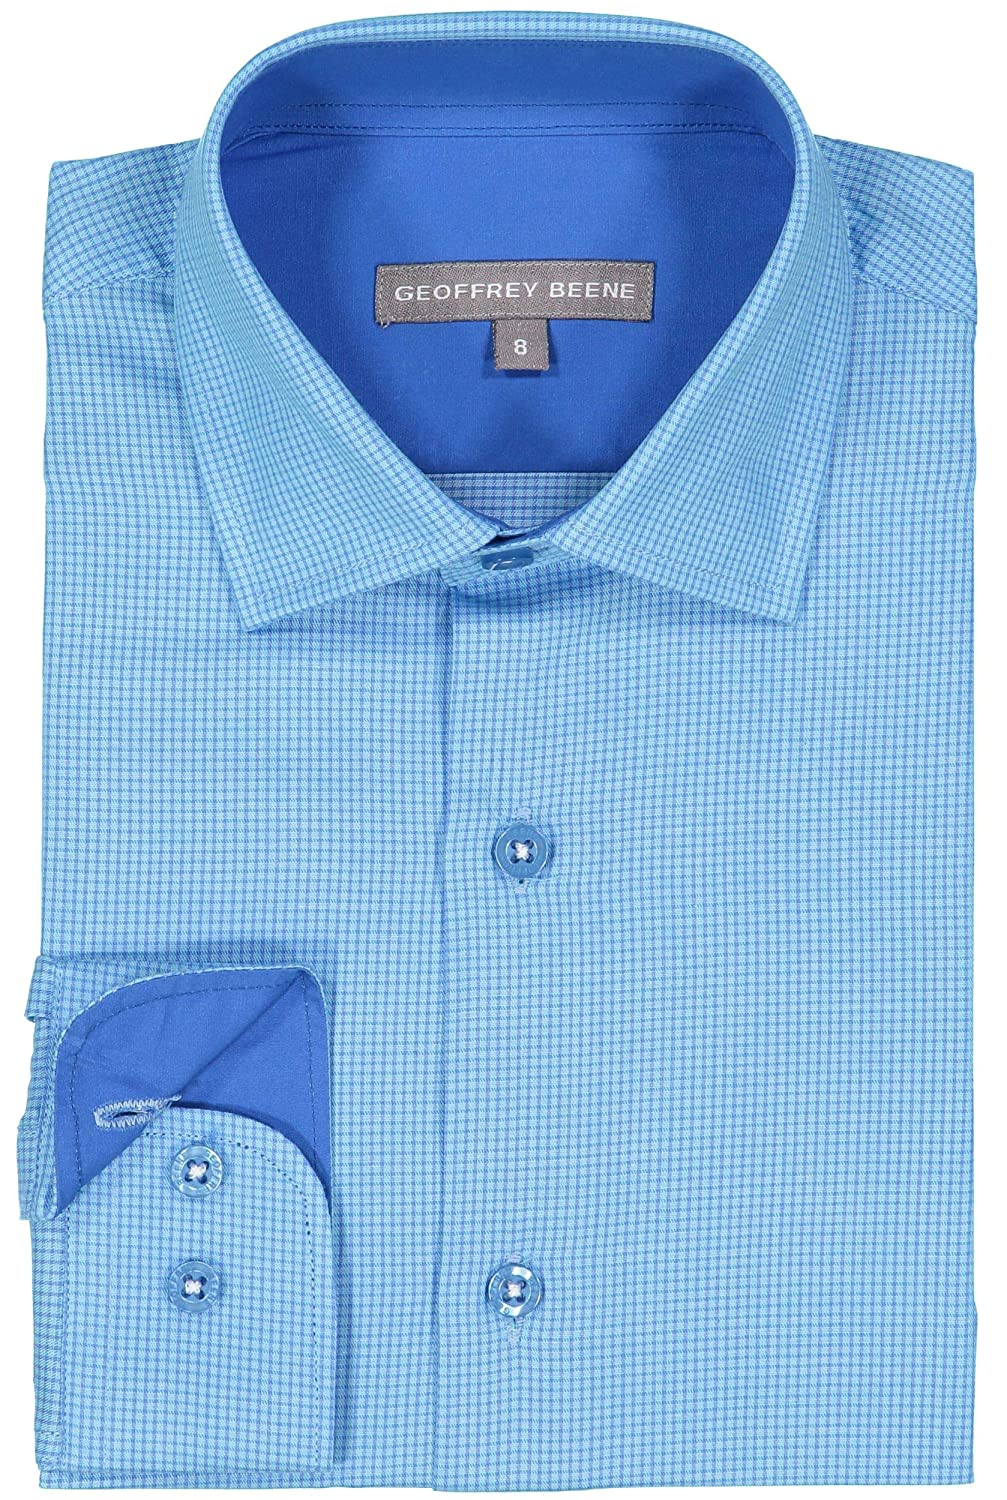 Boys Geoffrey Beene Designer Fashion Dress Shirt - Many Colors and Pattern Available